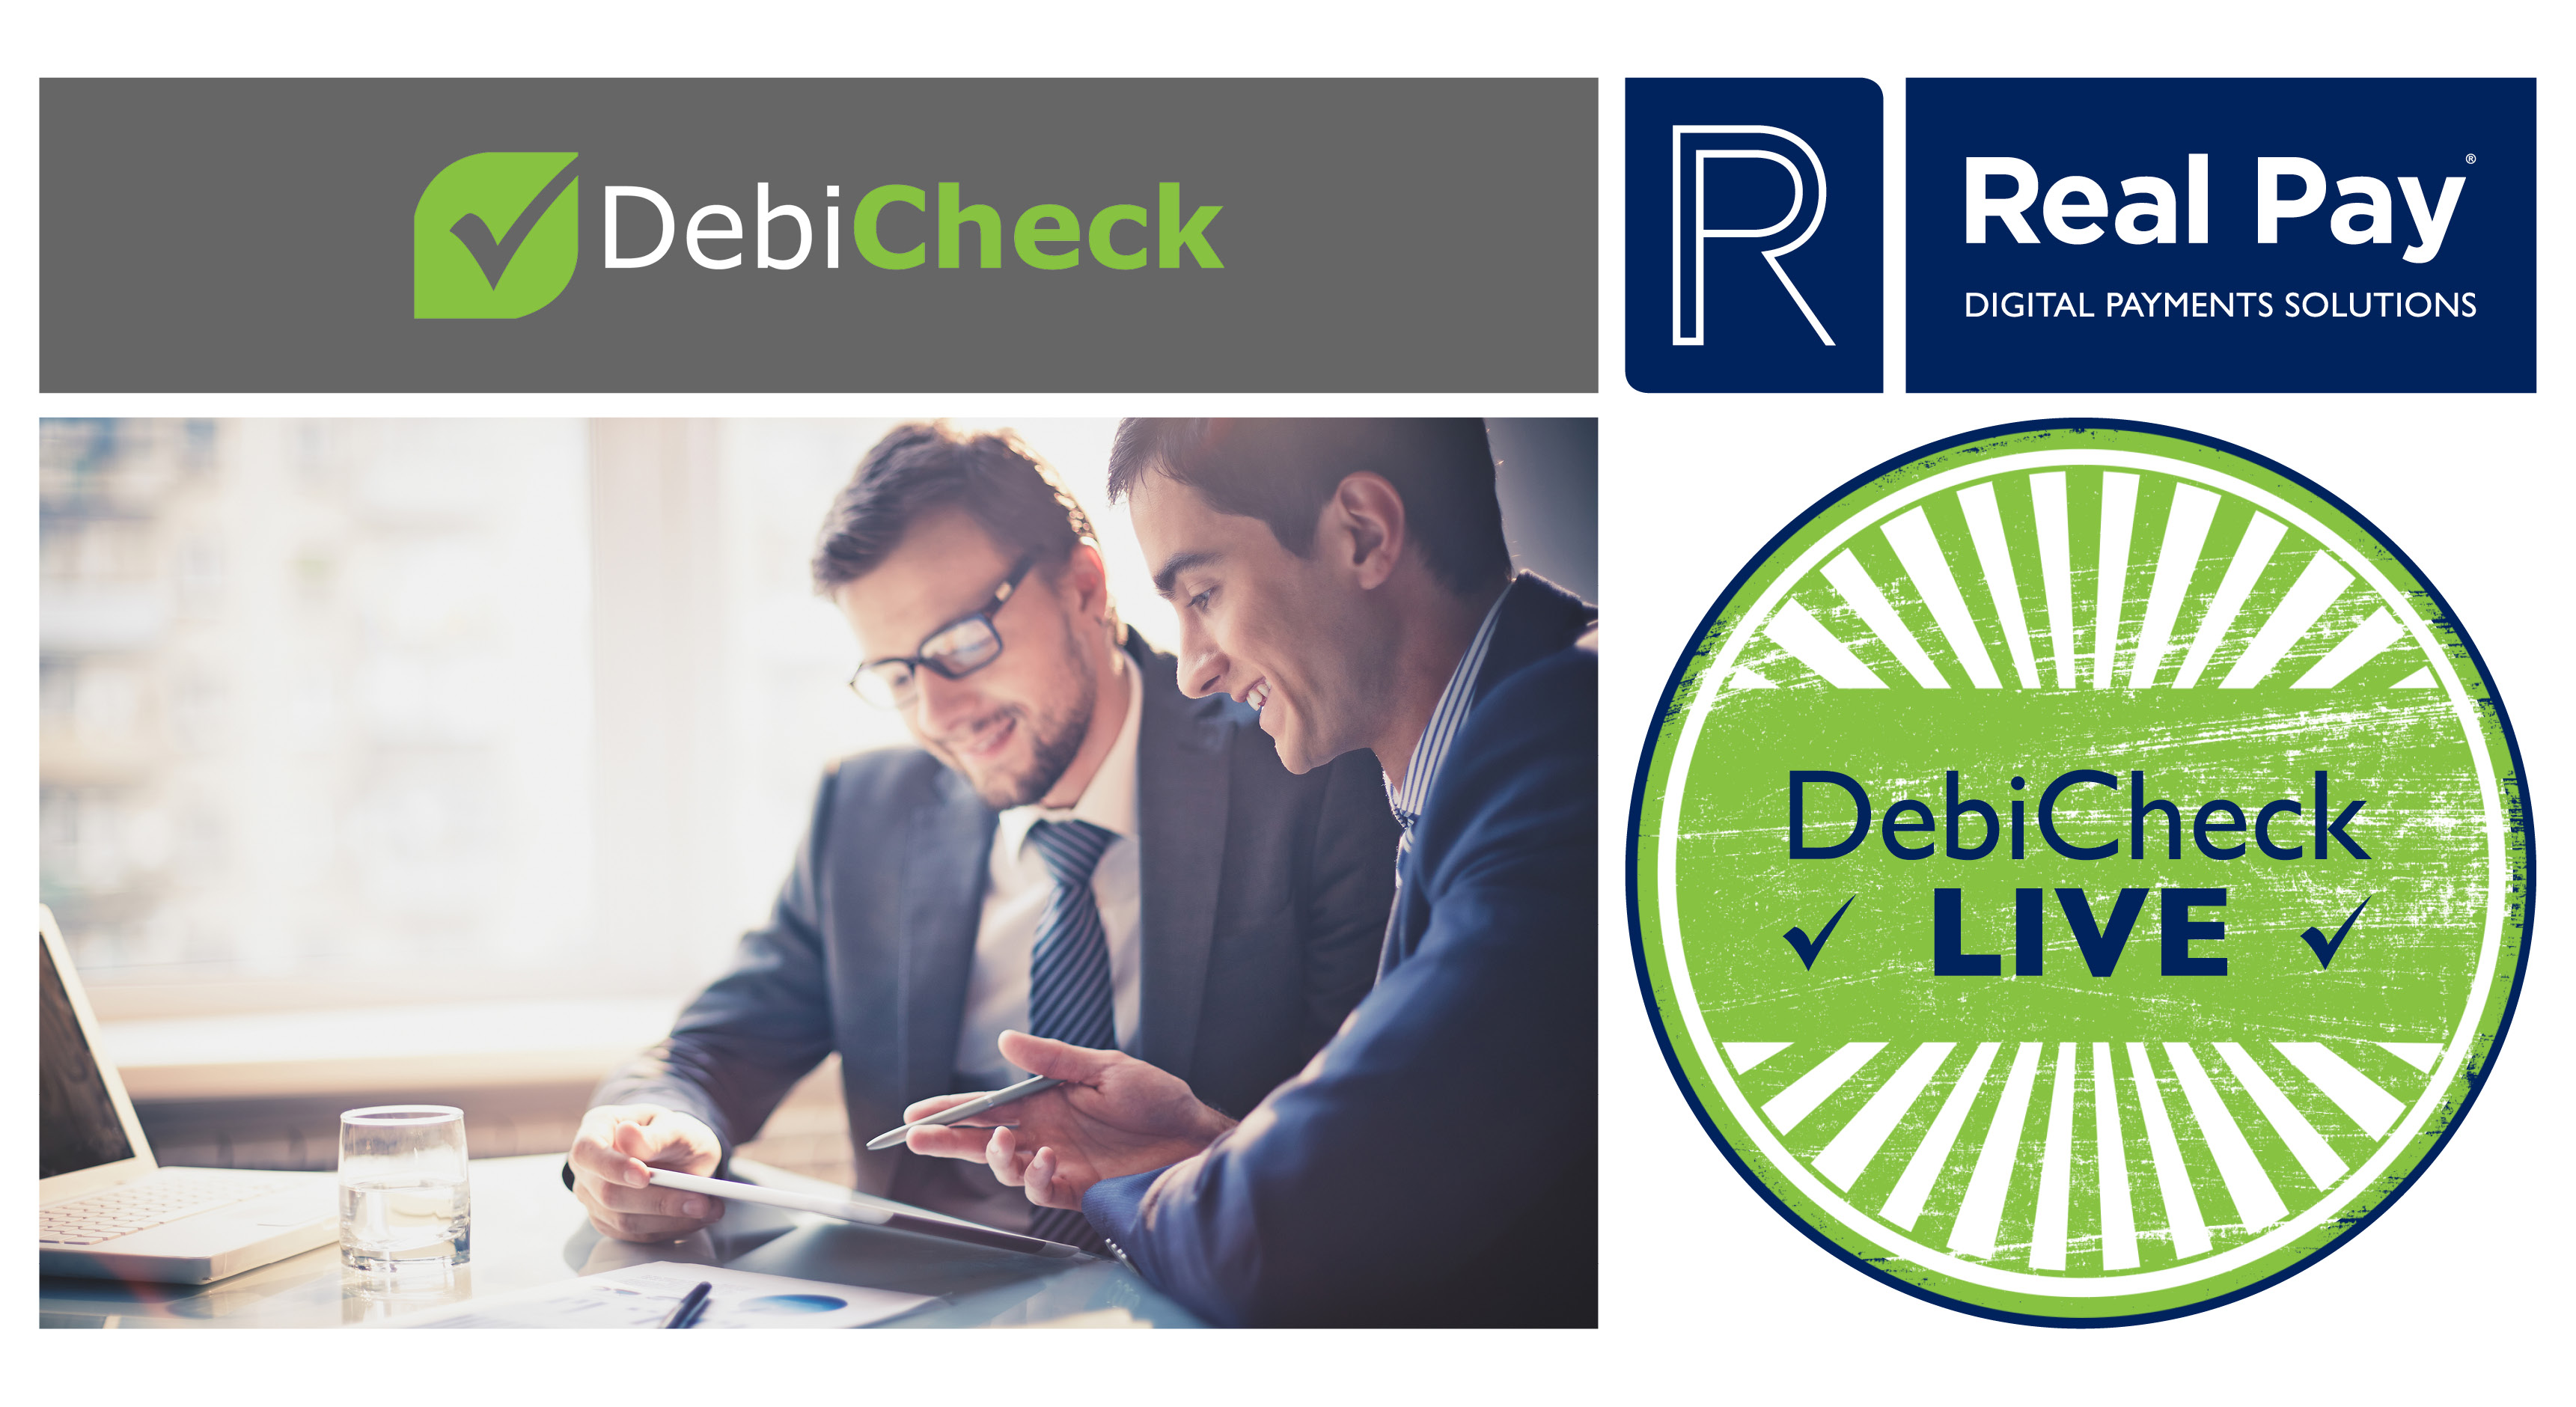 Real Pay DebiCheck Update | January 2020